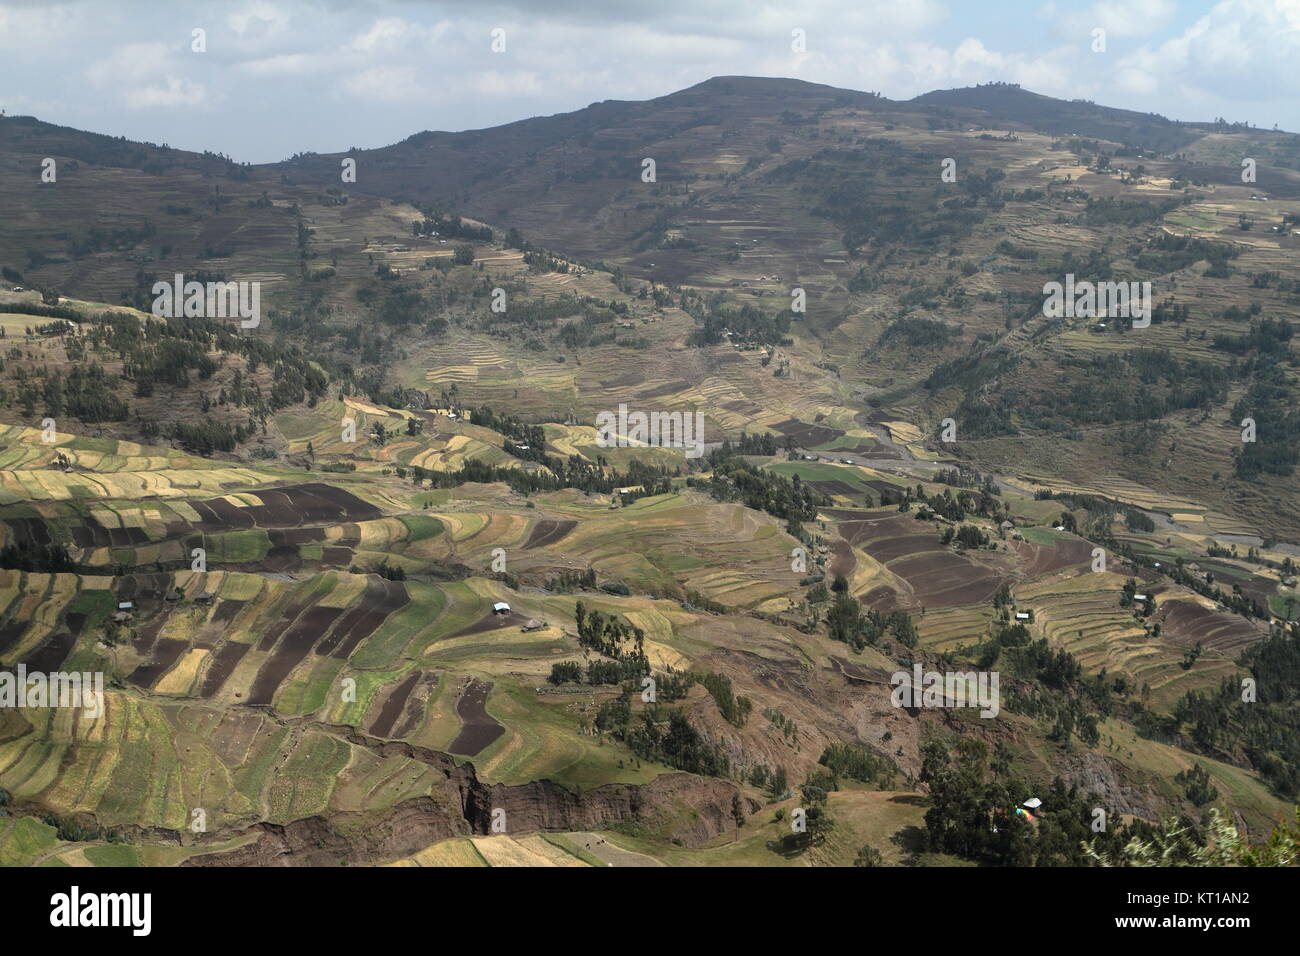 the landscape at lalibella in ethiopia - Stock Image